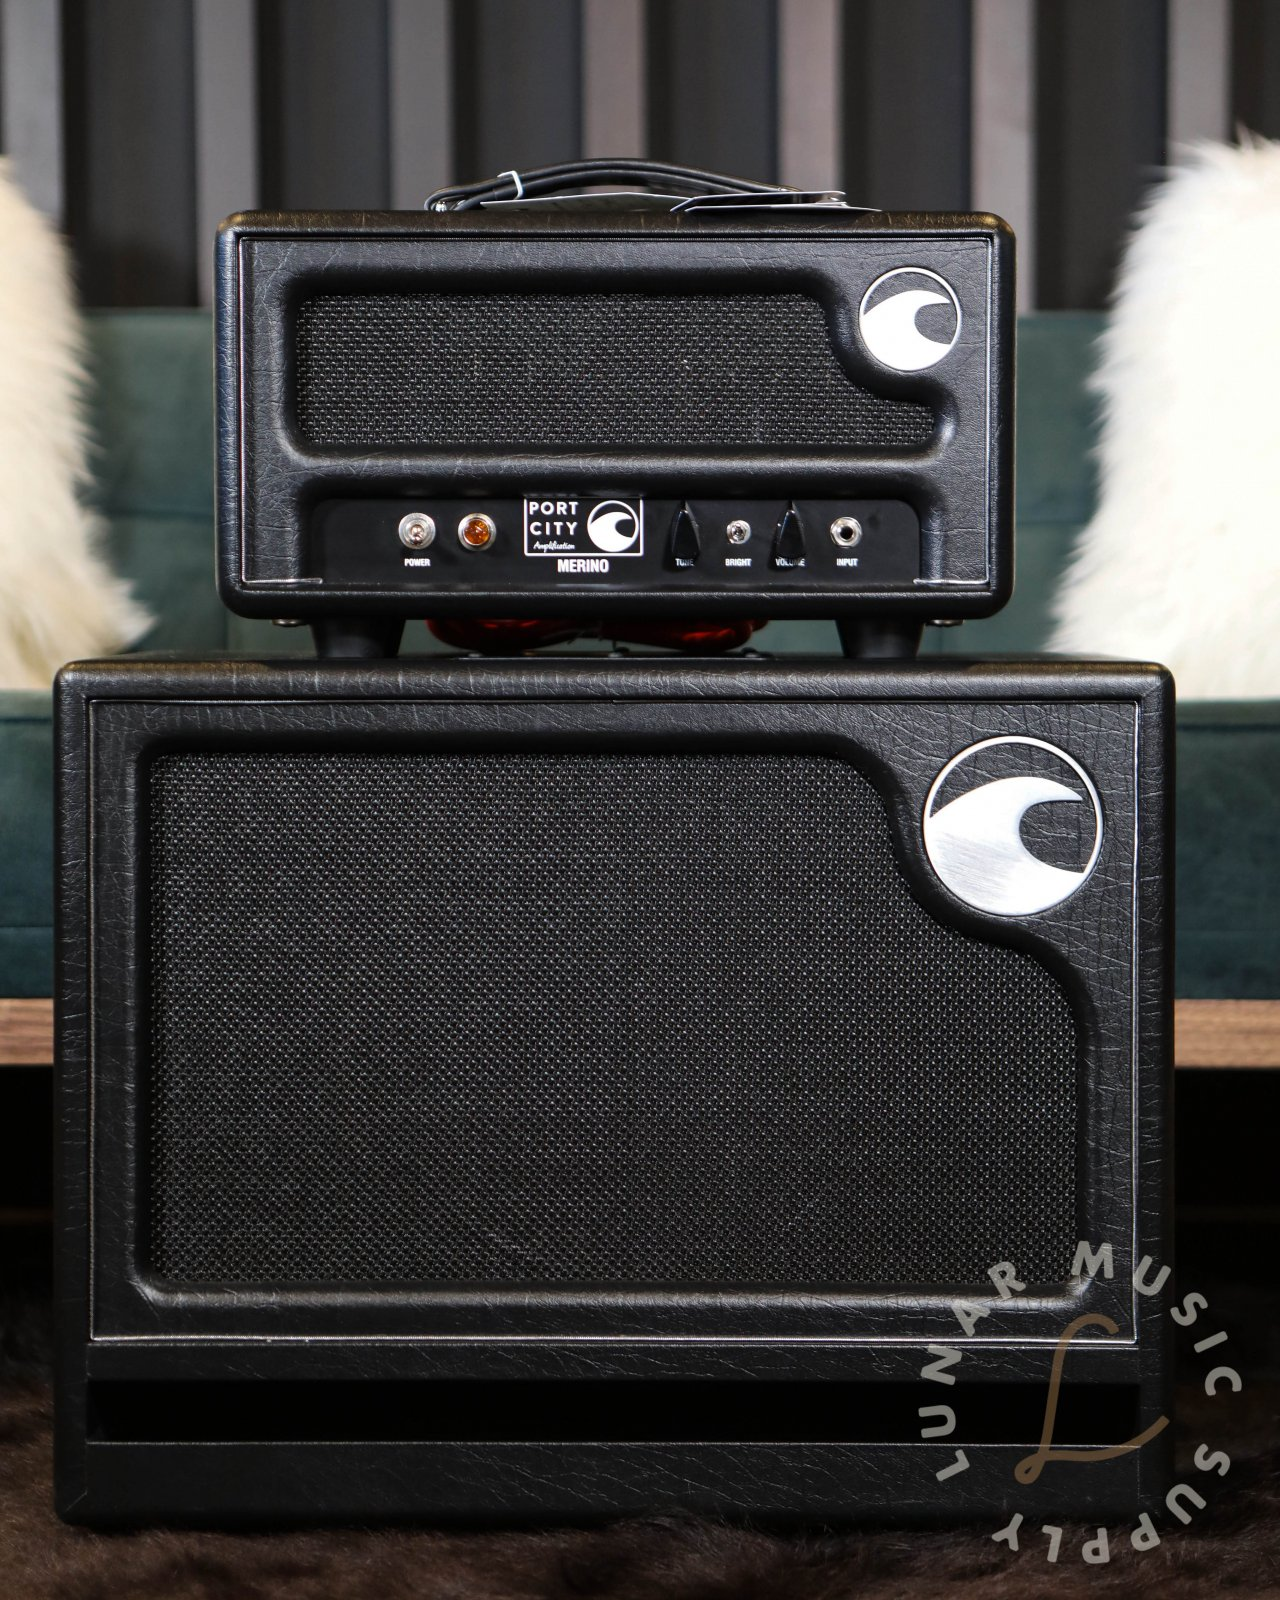 Port City Amplification Merino 10w Amplifier Head With Matching 1x12 Cabinet